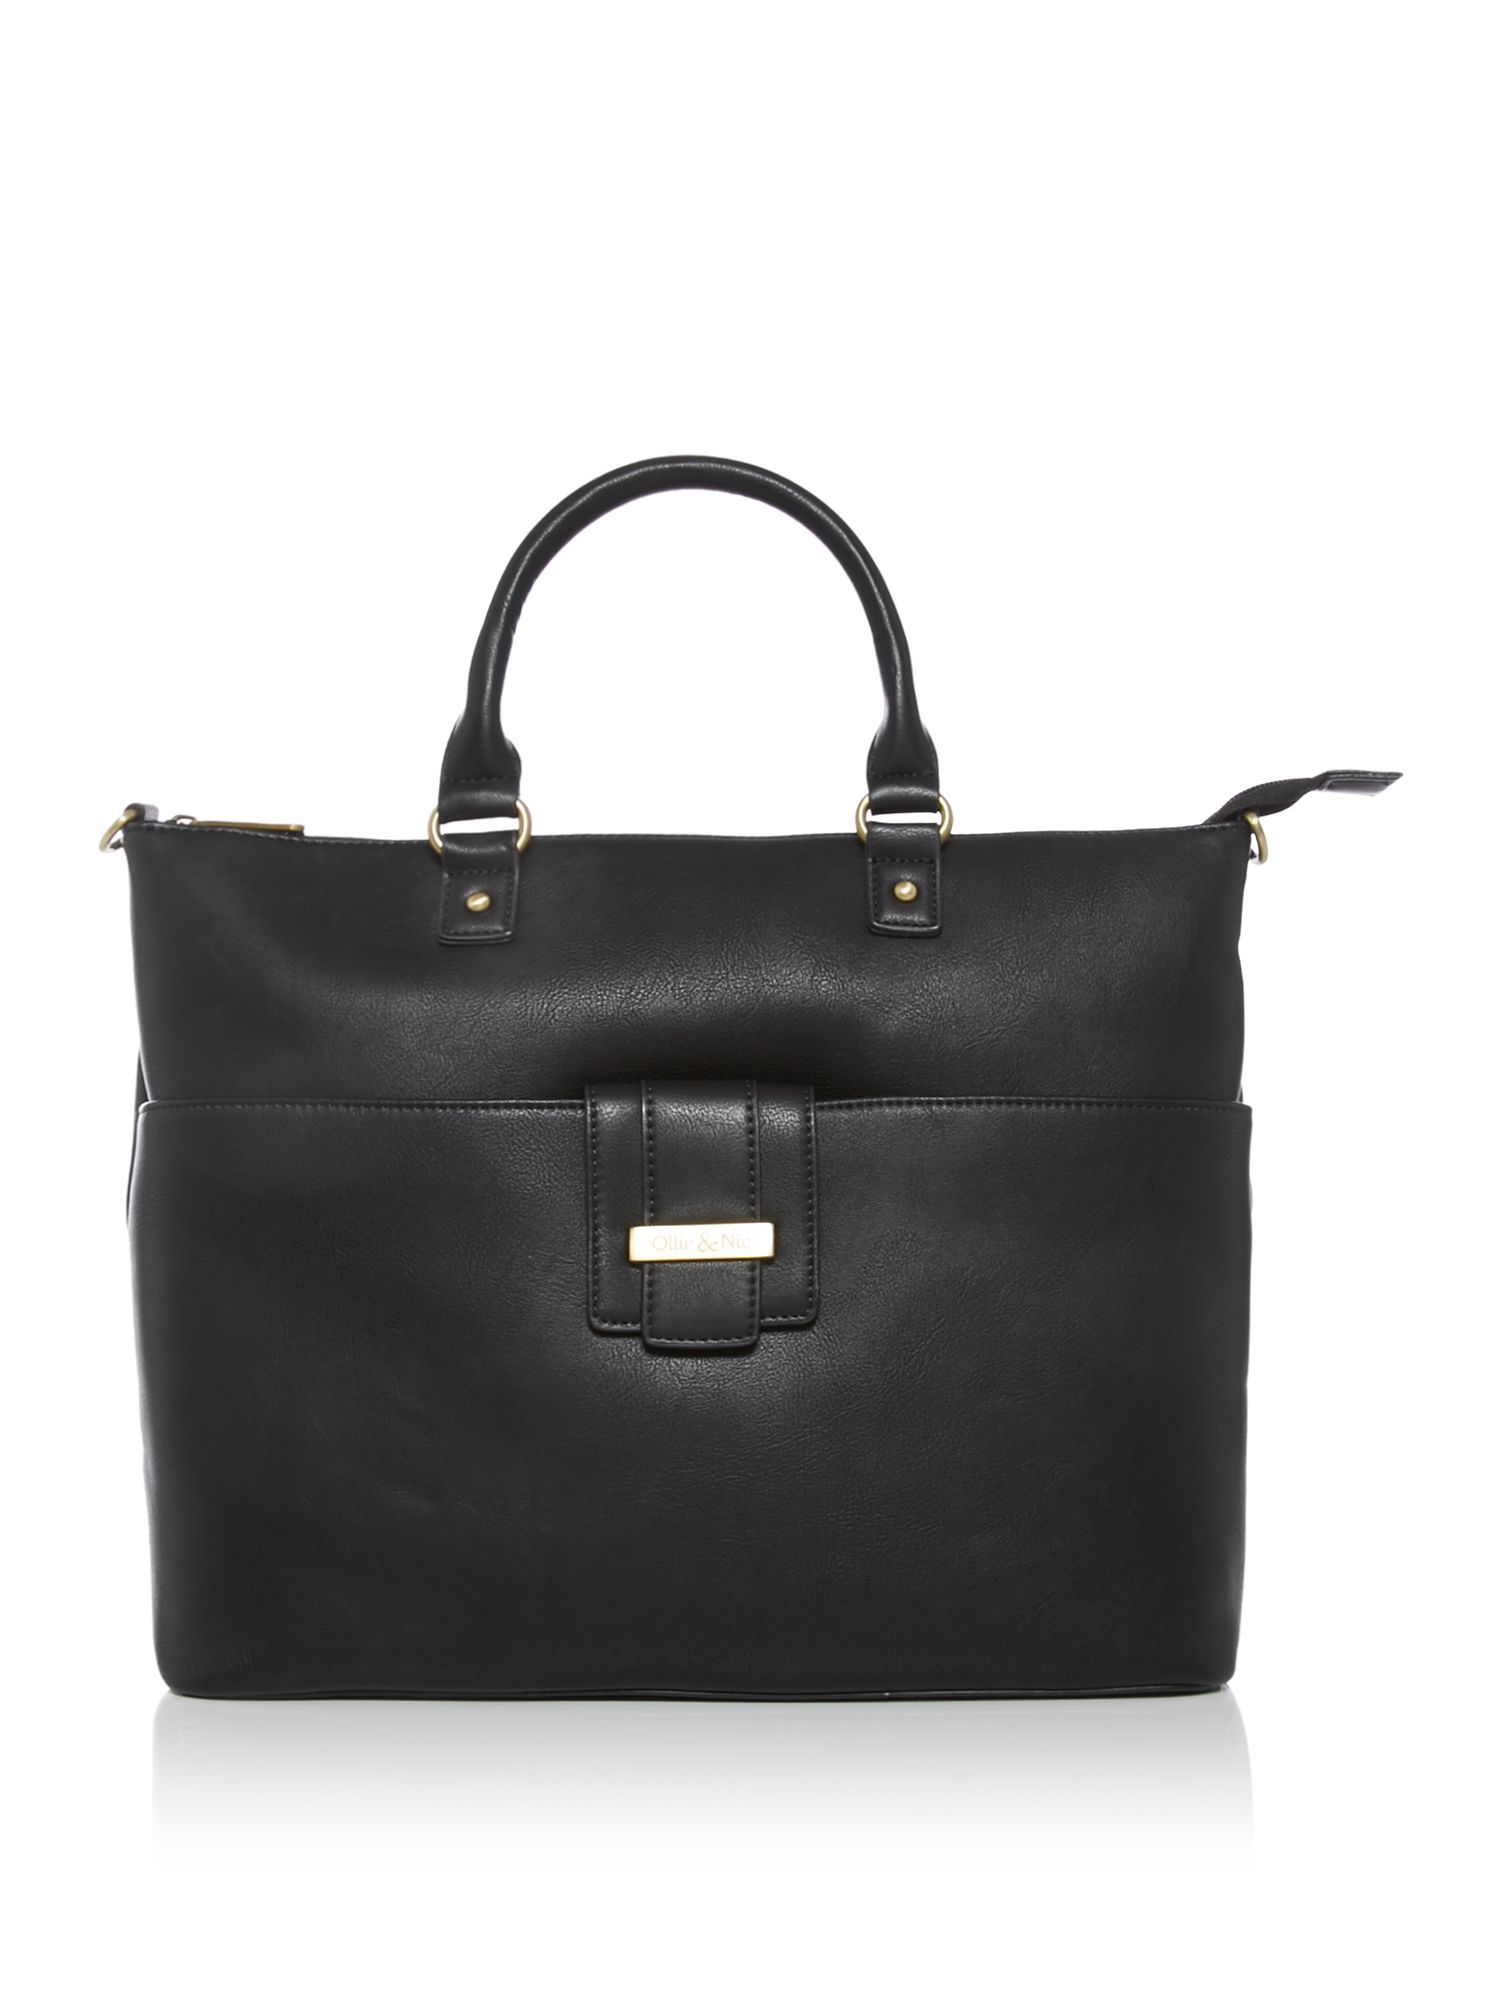 Ollie & Nic Evie tote bag, Black